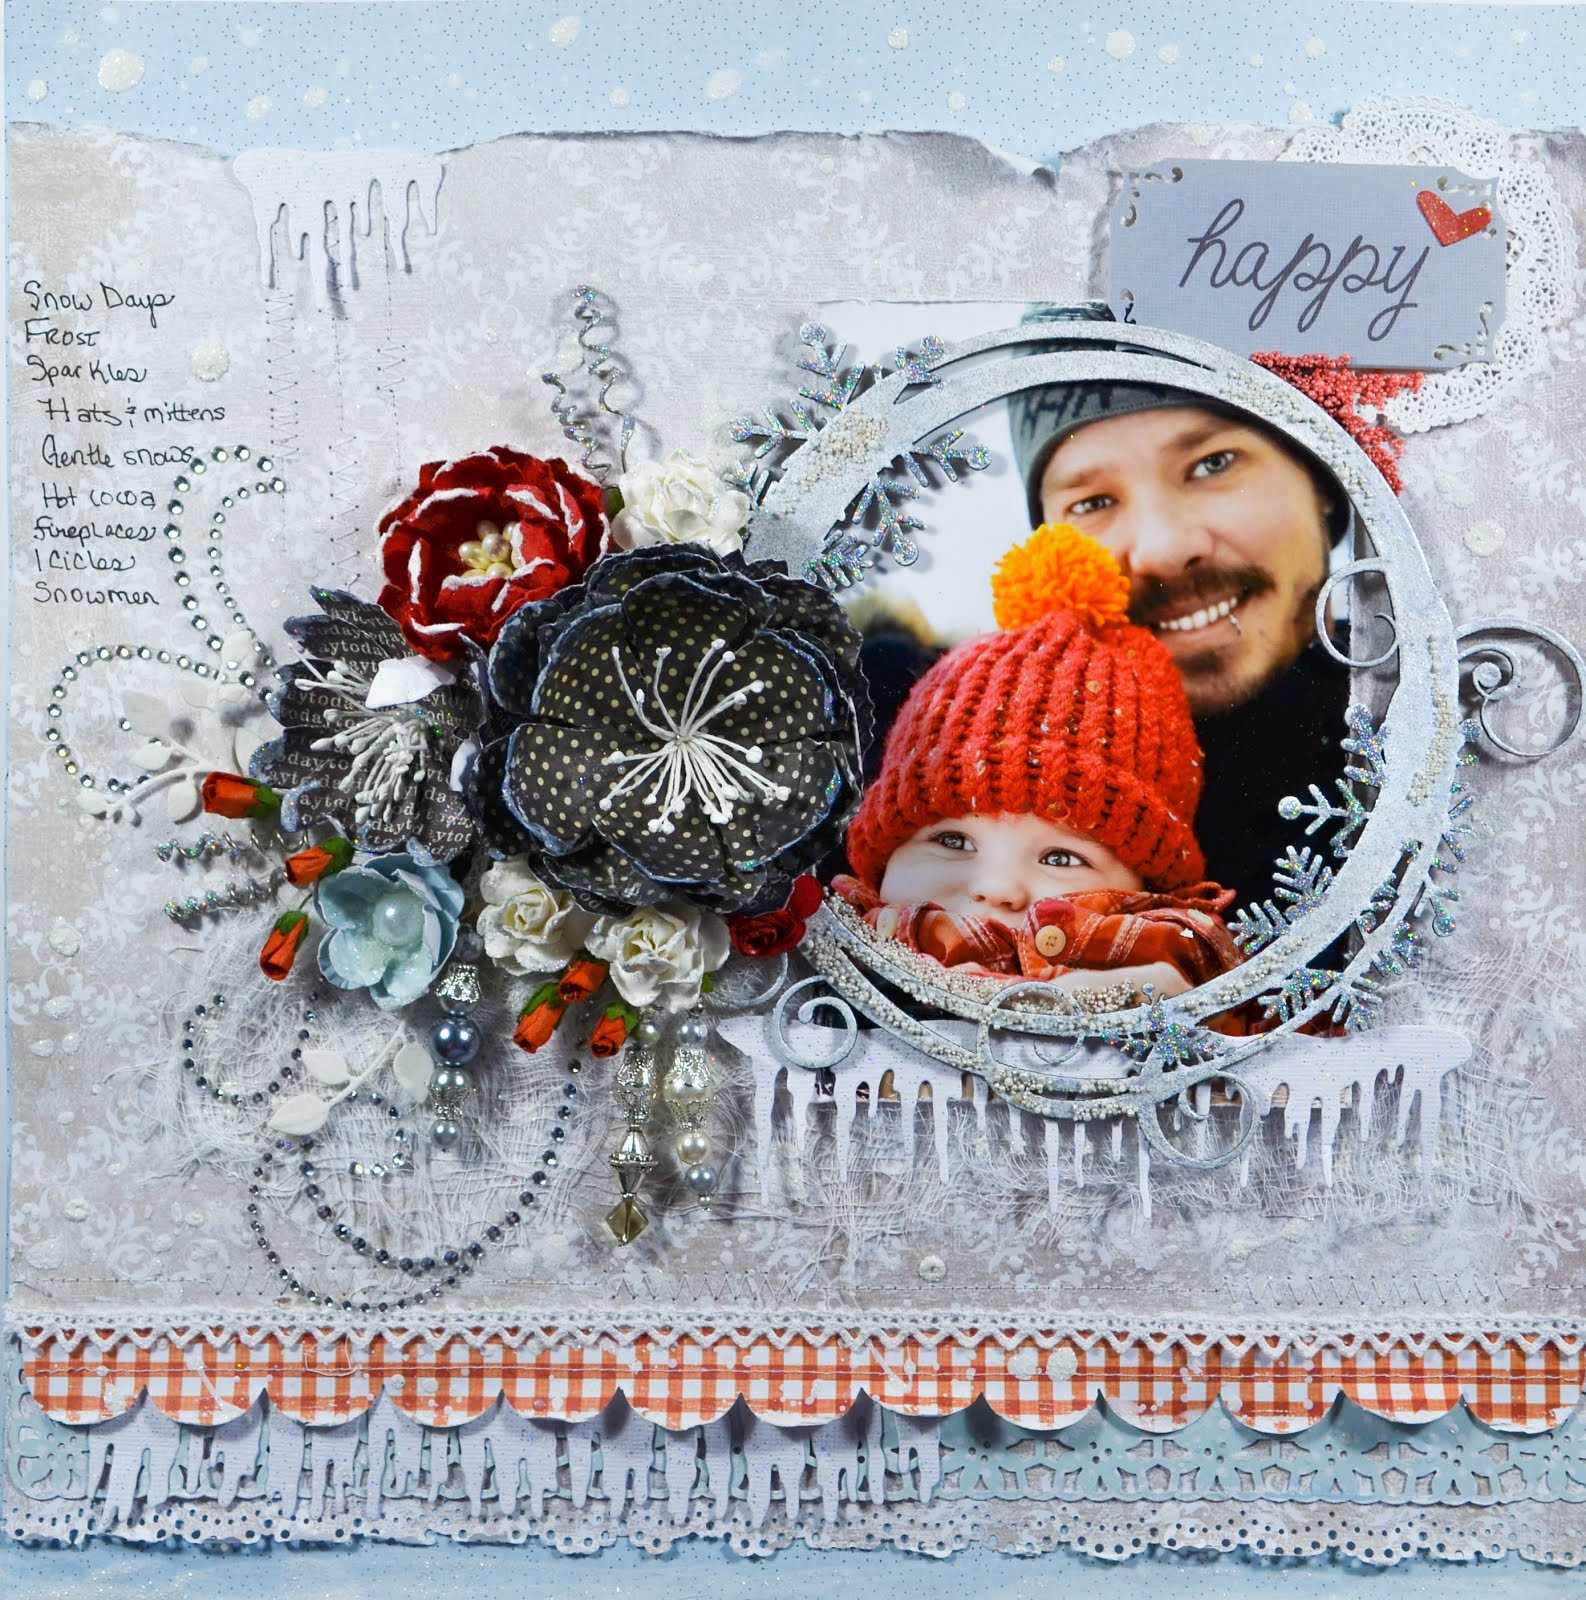 Winter themed scrapbooking layout page with icicles, cheesecloth, crystal flourishes, bead dangles, glitter, puff paint, snowflakes, and gingham, Blue Fern Studios chipboard, handmade flowers. In red, gray, pale blue, and black. Heat embossed and embellished with prills.